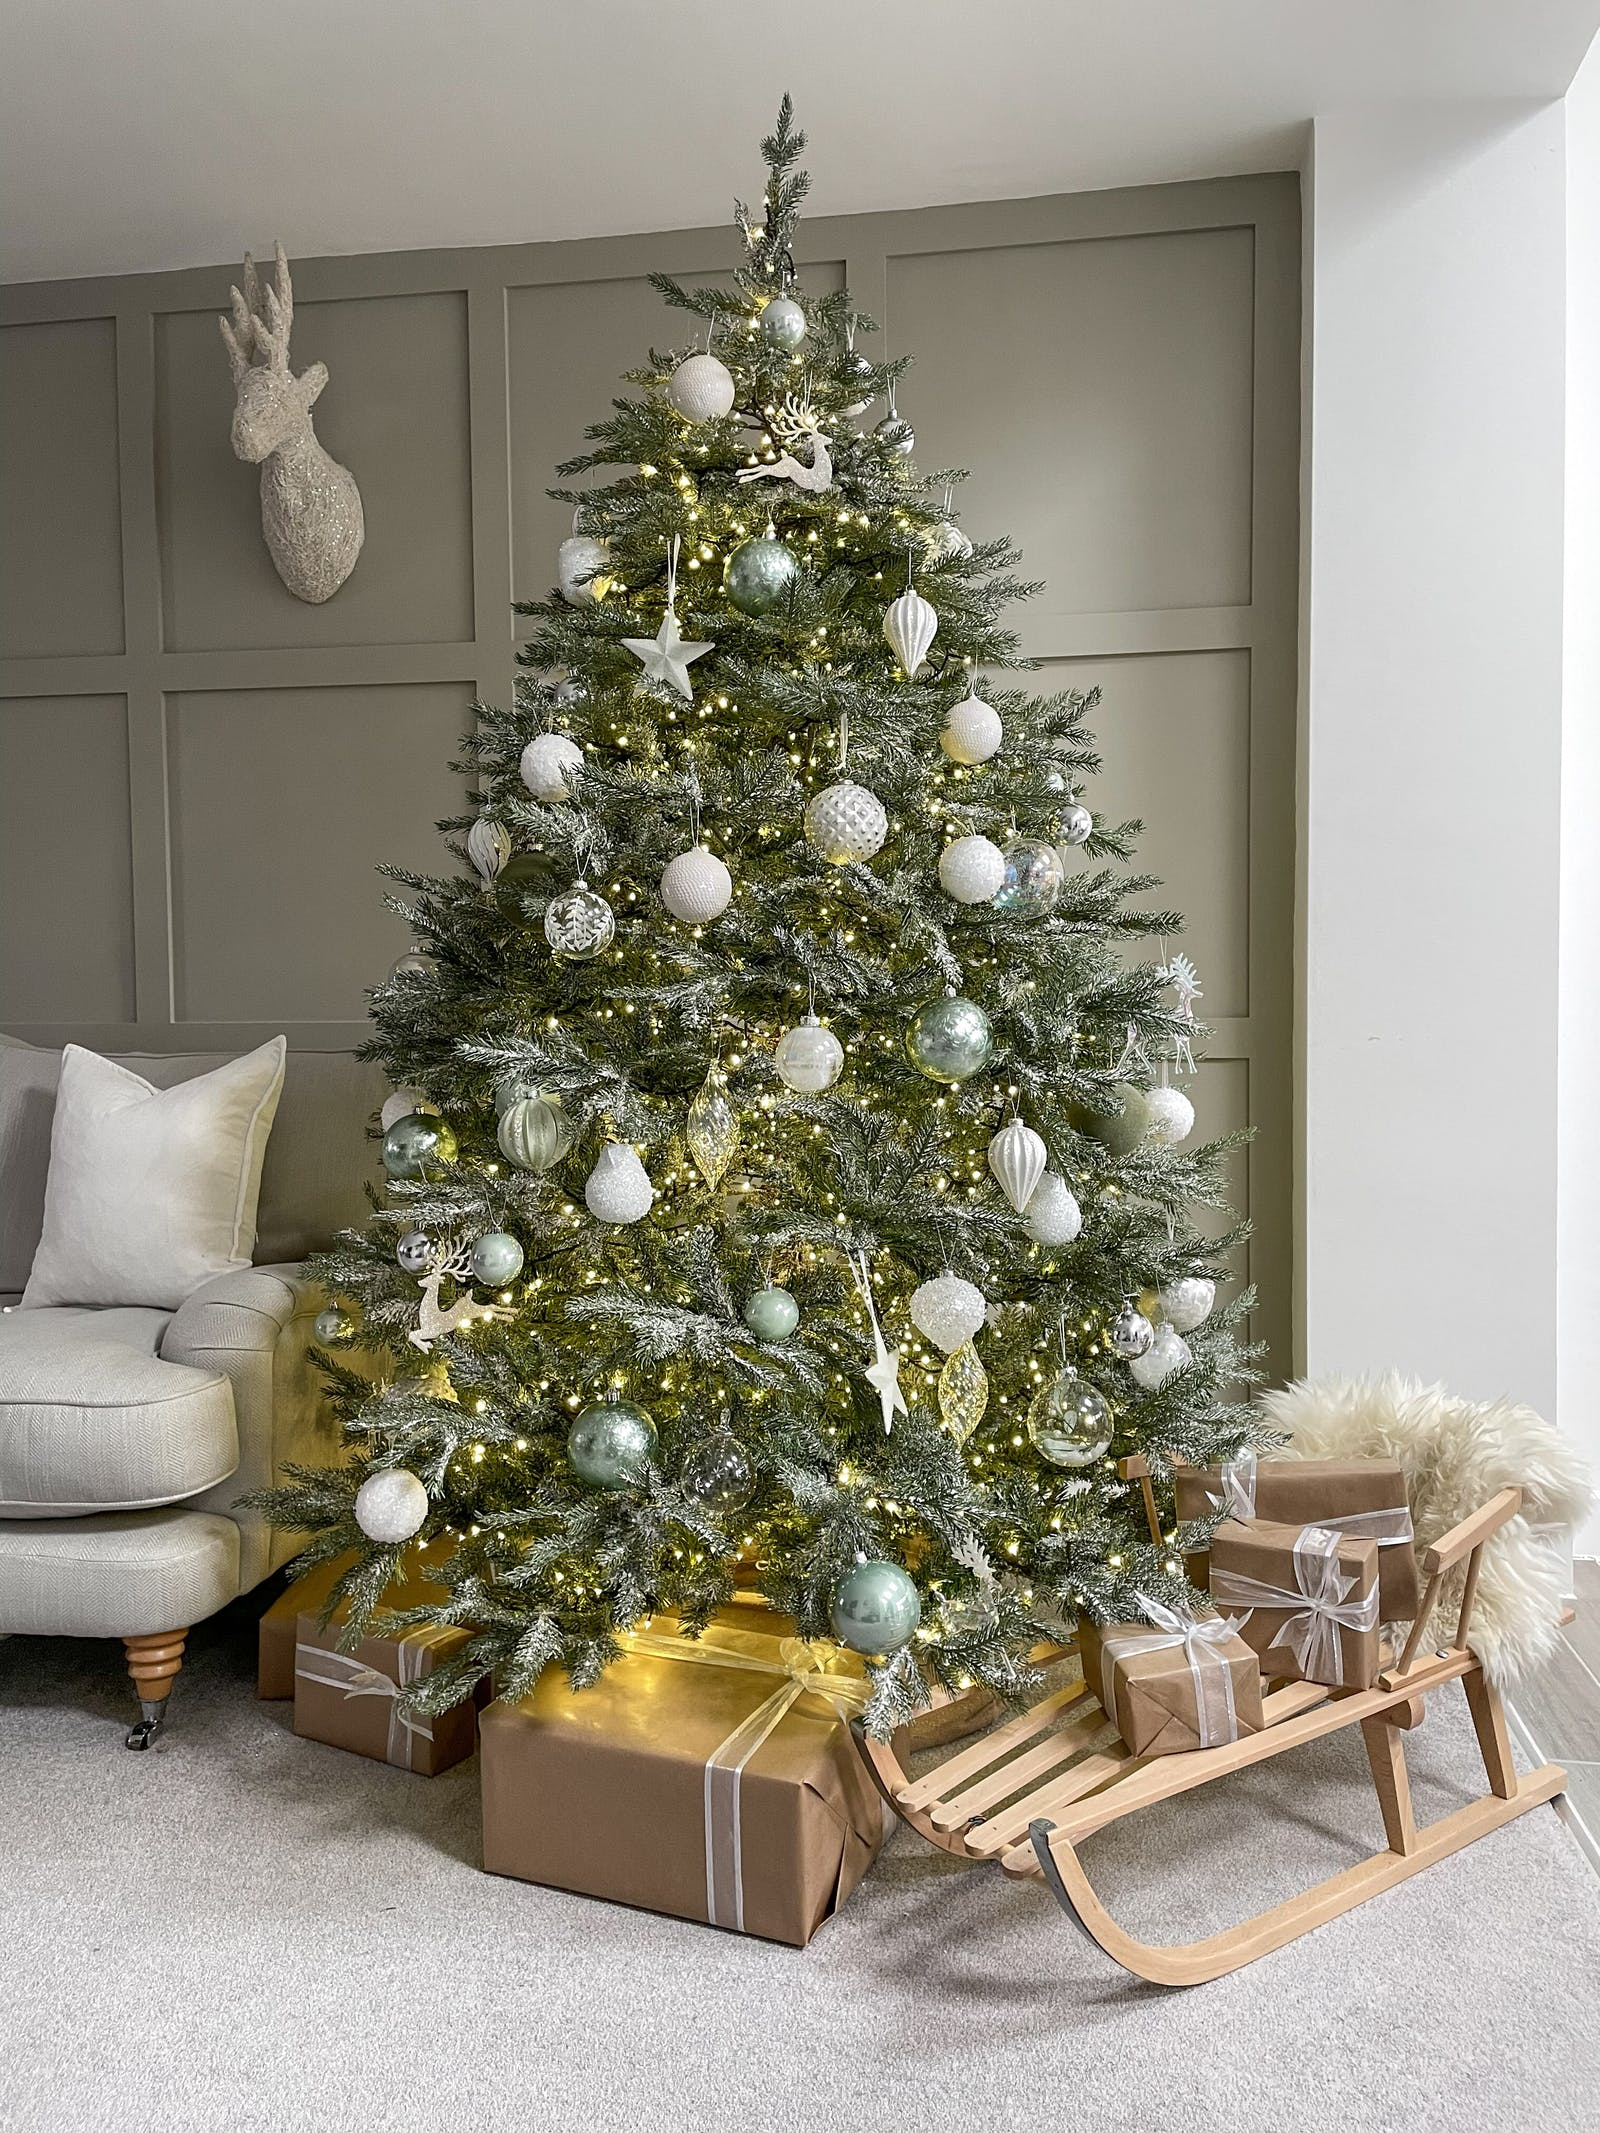 Large Christmas tree decorated in pale blue and white baubles